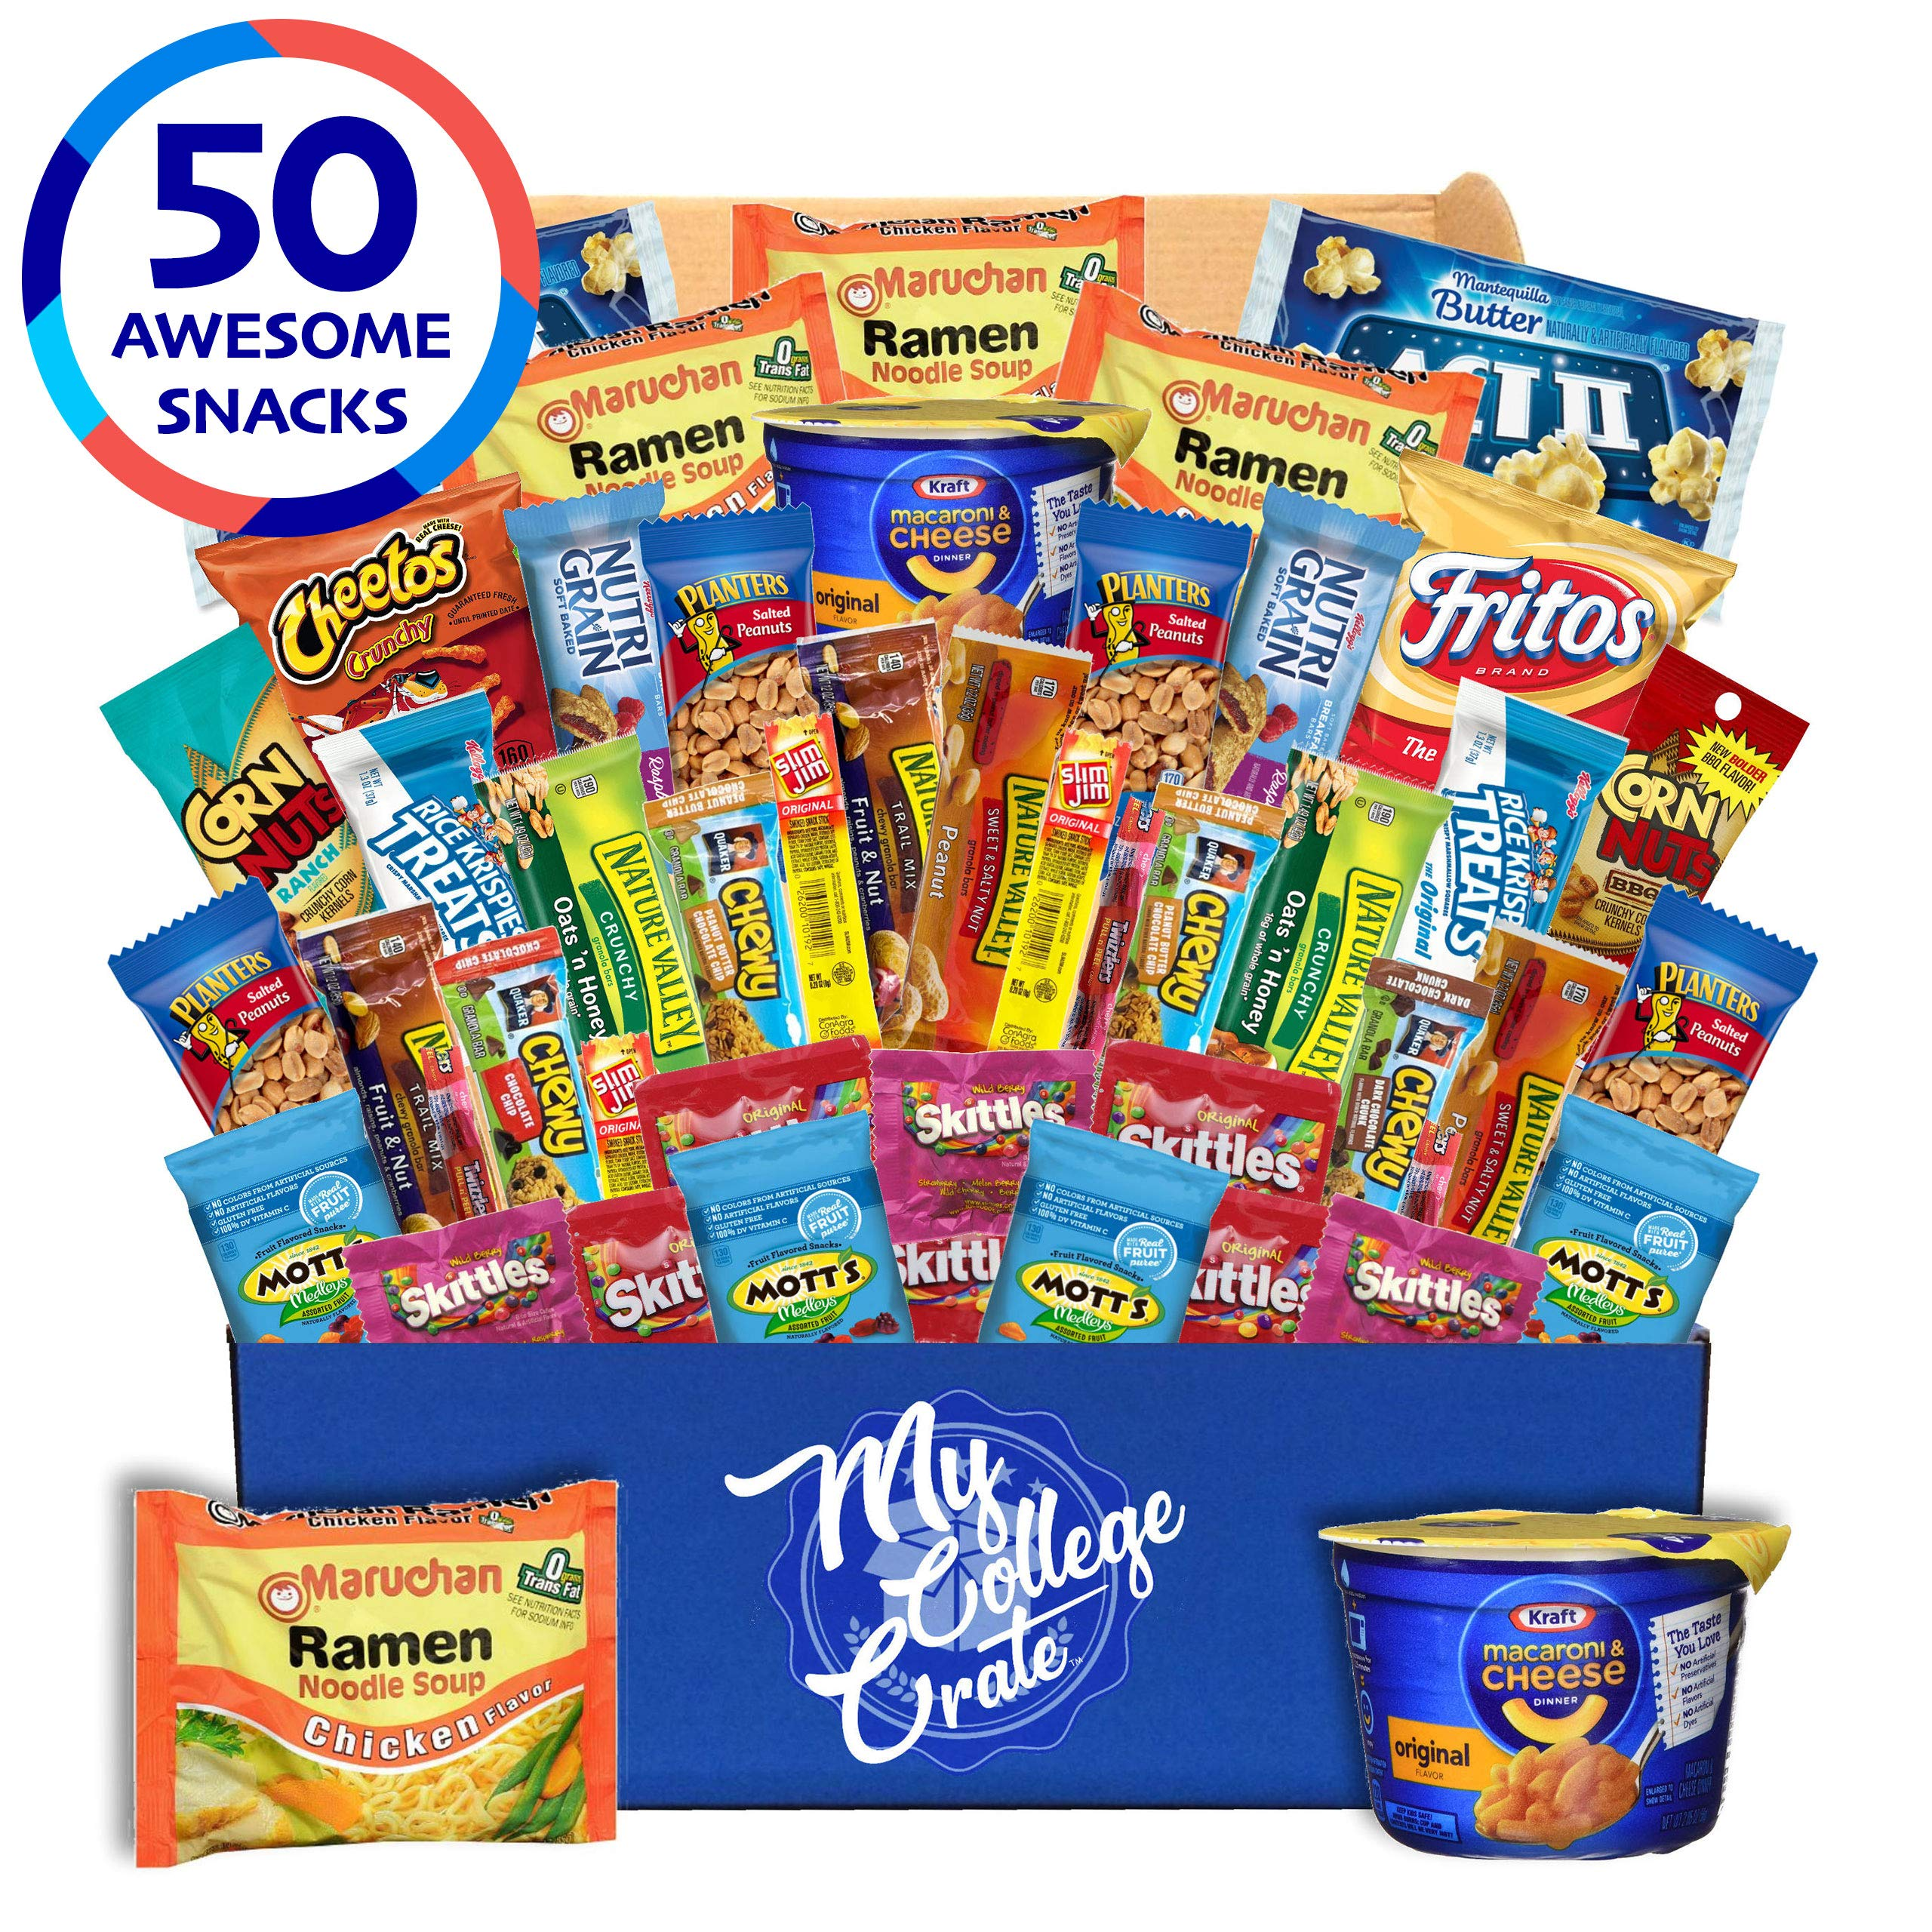 My  College  Crate   Microwave  Snack Care Package -  50 Piece  Bulk Variety Pack Box for Adults  and  Kids  with Ramen  Mix ,  Popcorn, Mac n Cheese, Assorted Chips, Granola Bars and Candy by My College Crate (Image #1)